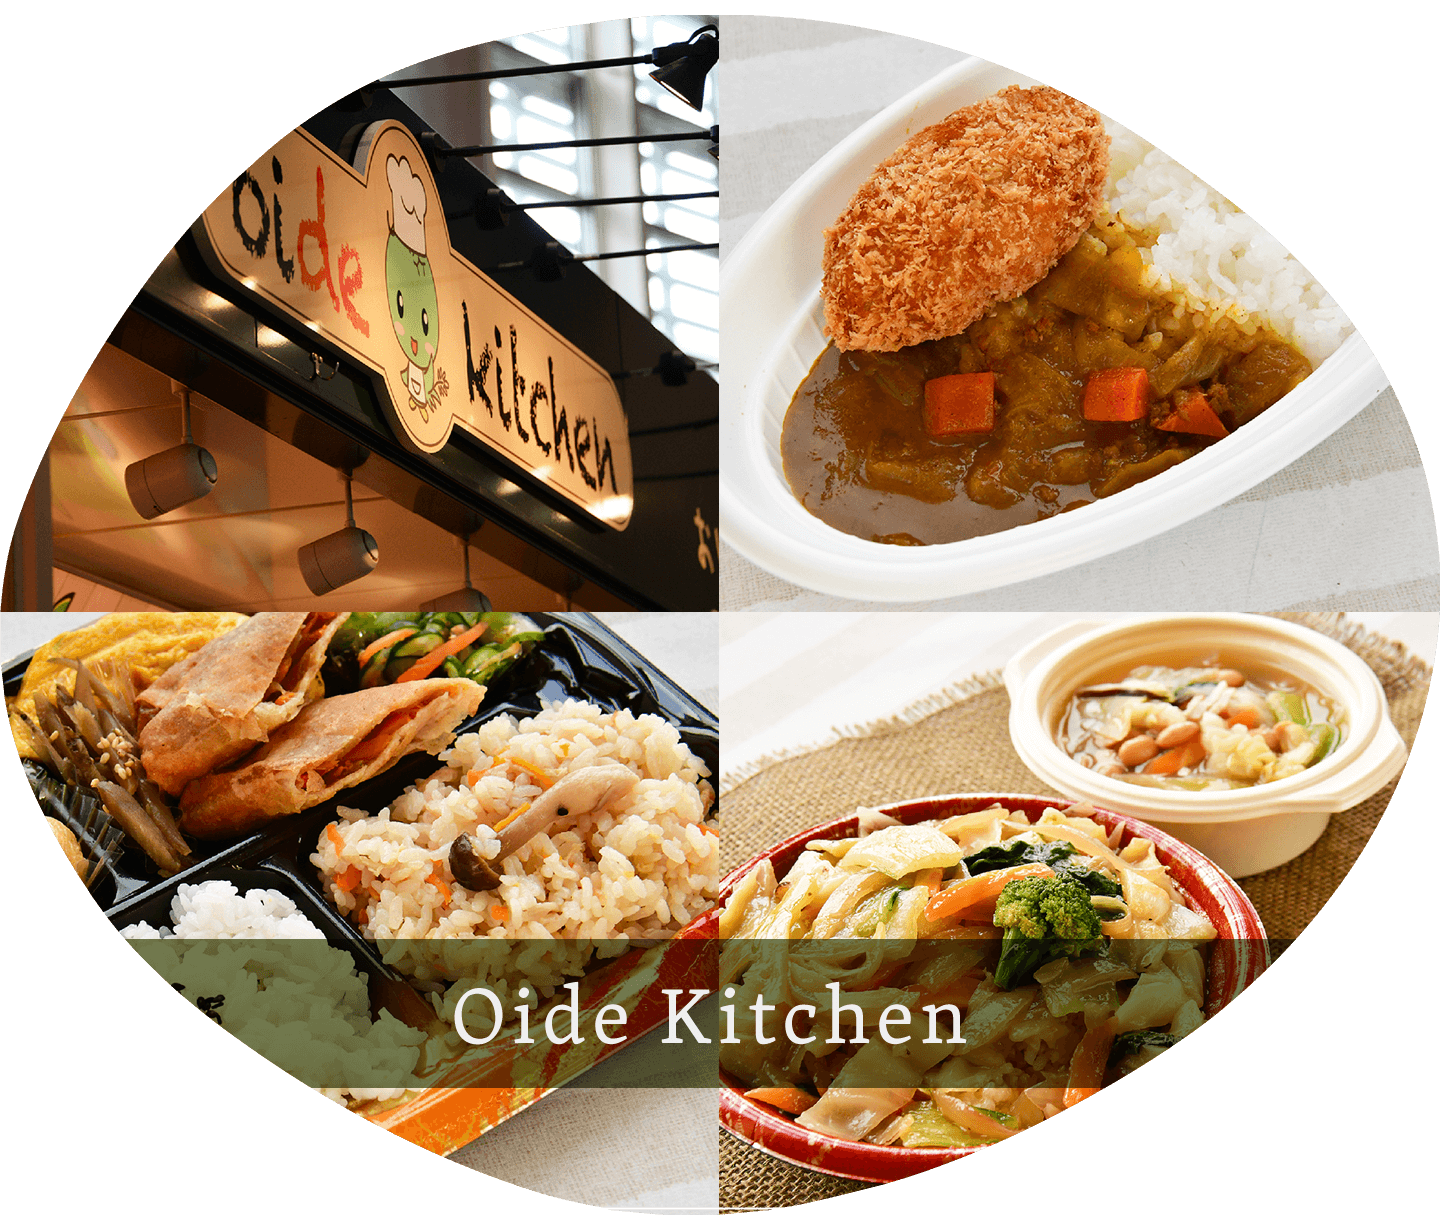 Oide Kitchen